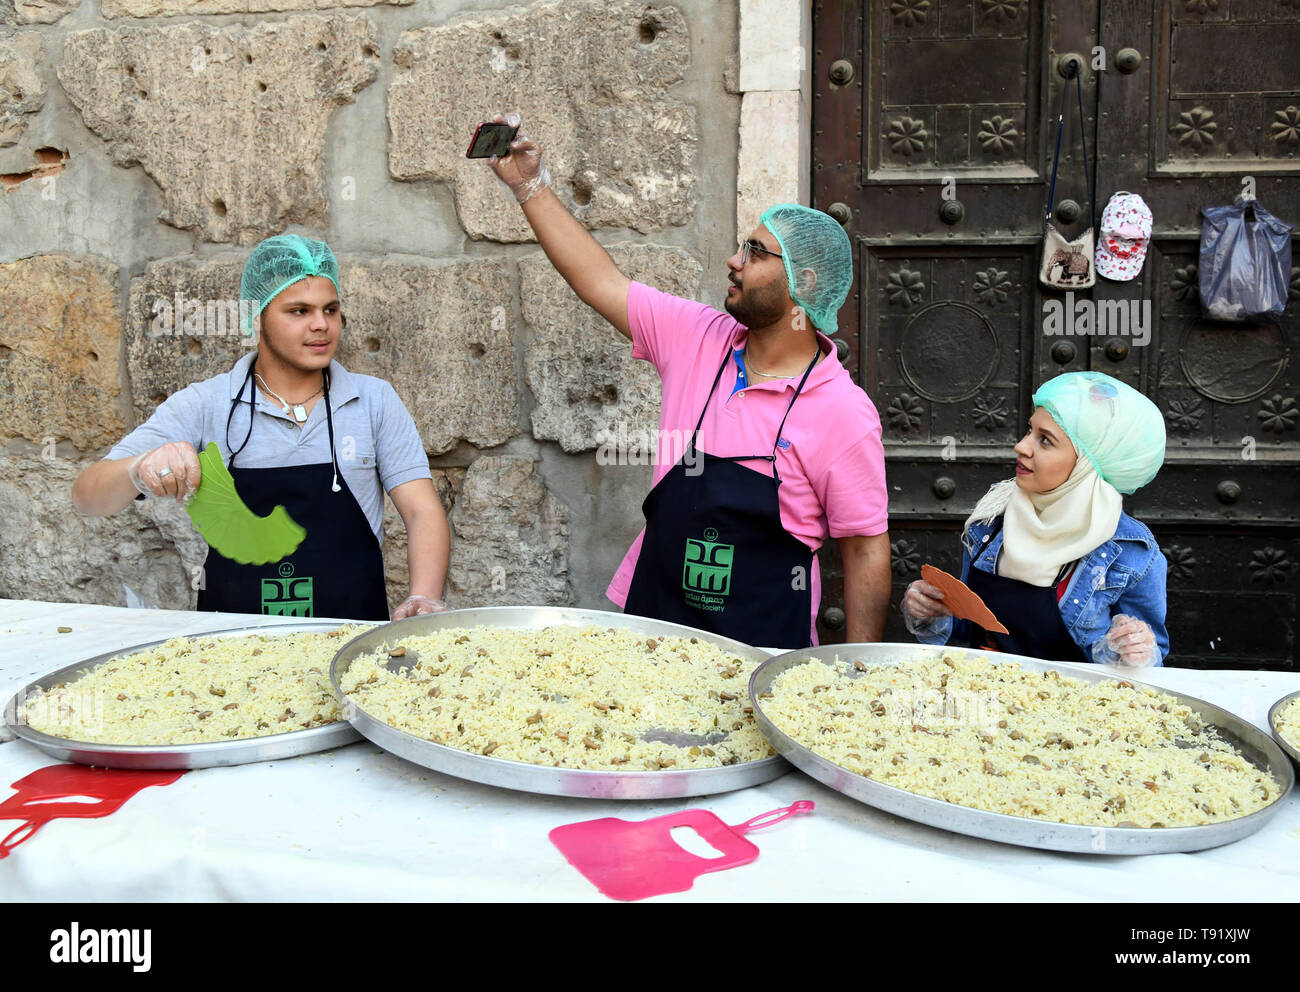 Damascus, Syria  14th May, 2019  Volunteers prepare food at a